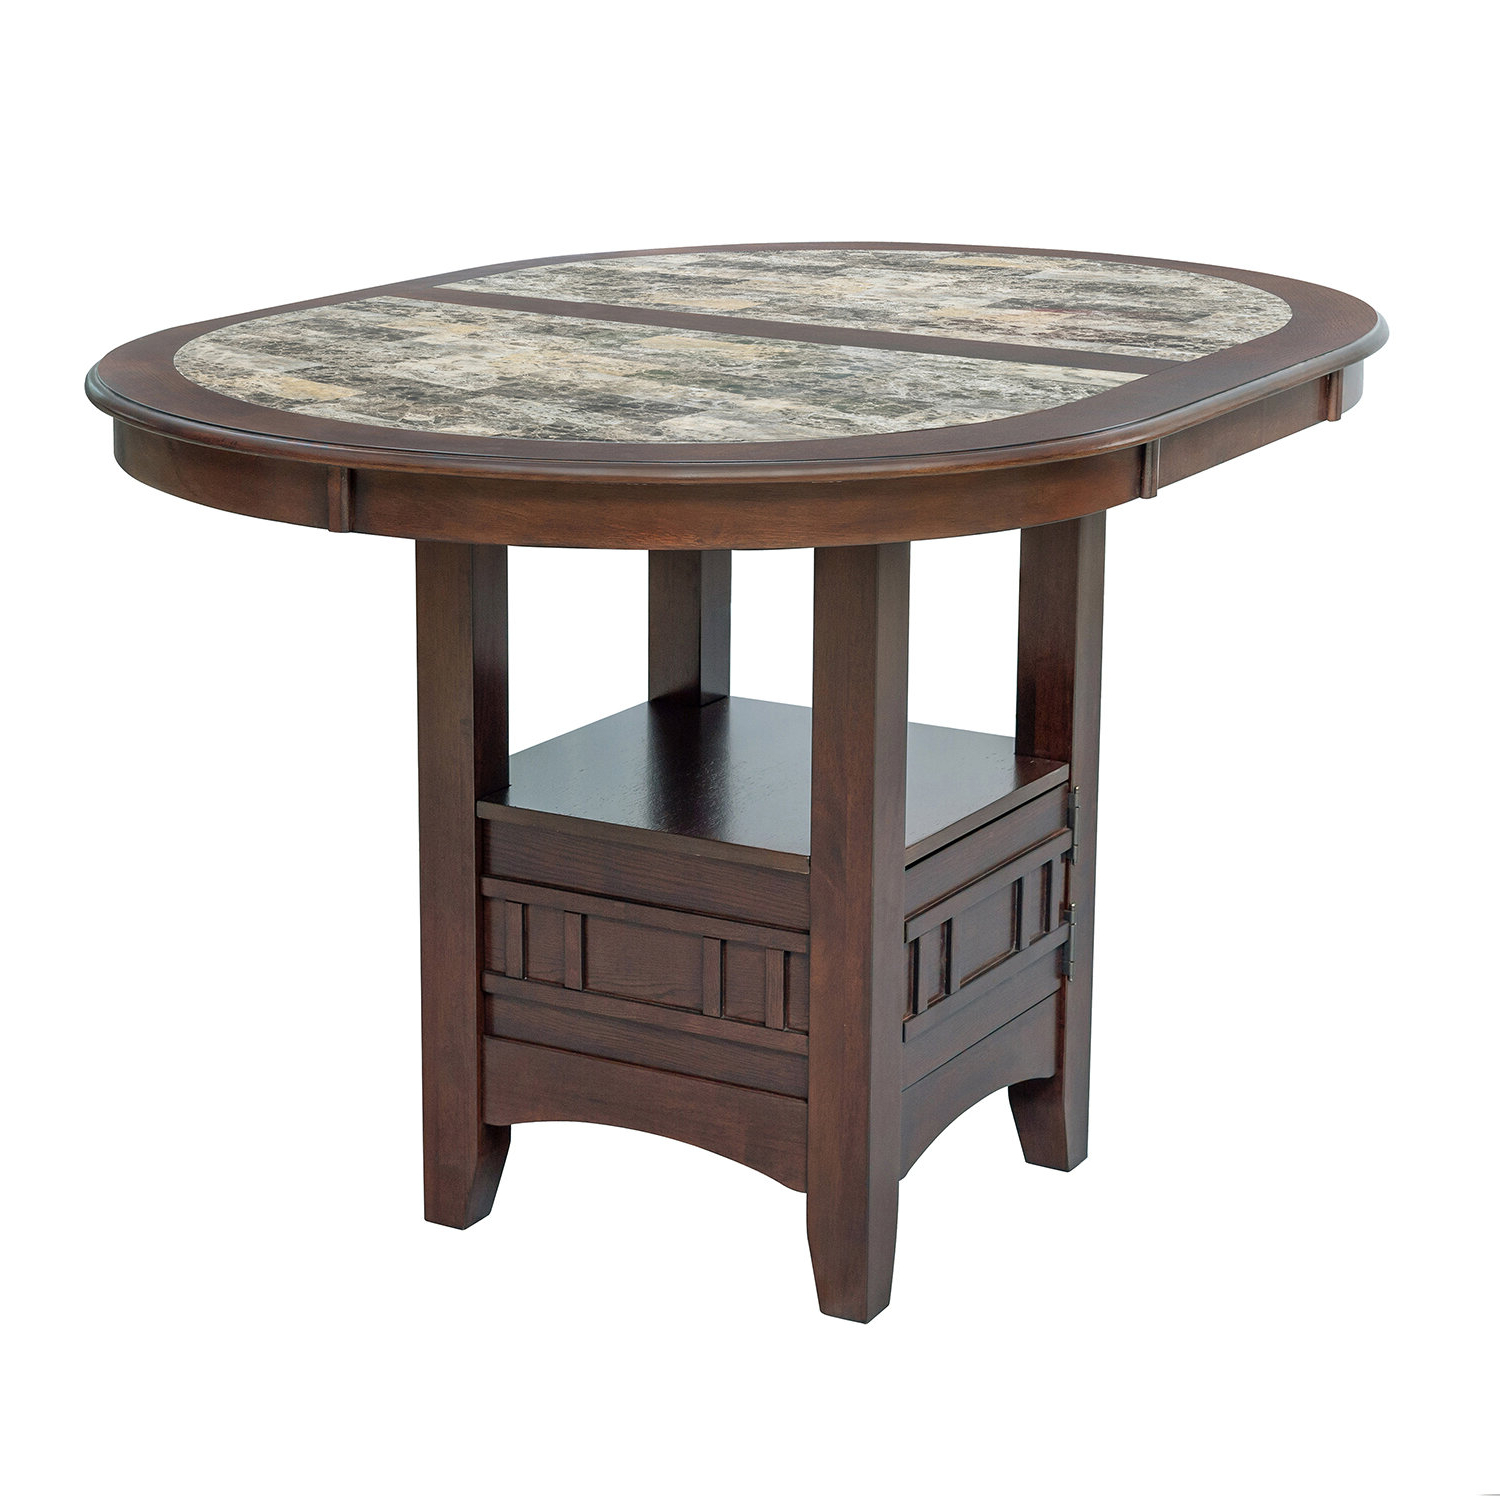 Oval 96 Inch Table (View 17 of 20)